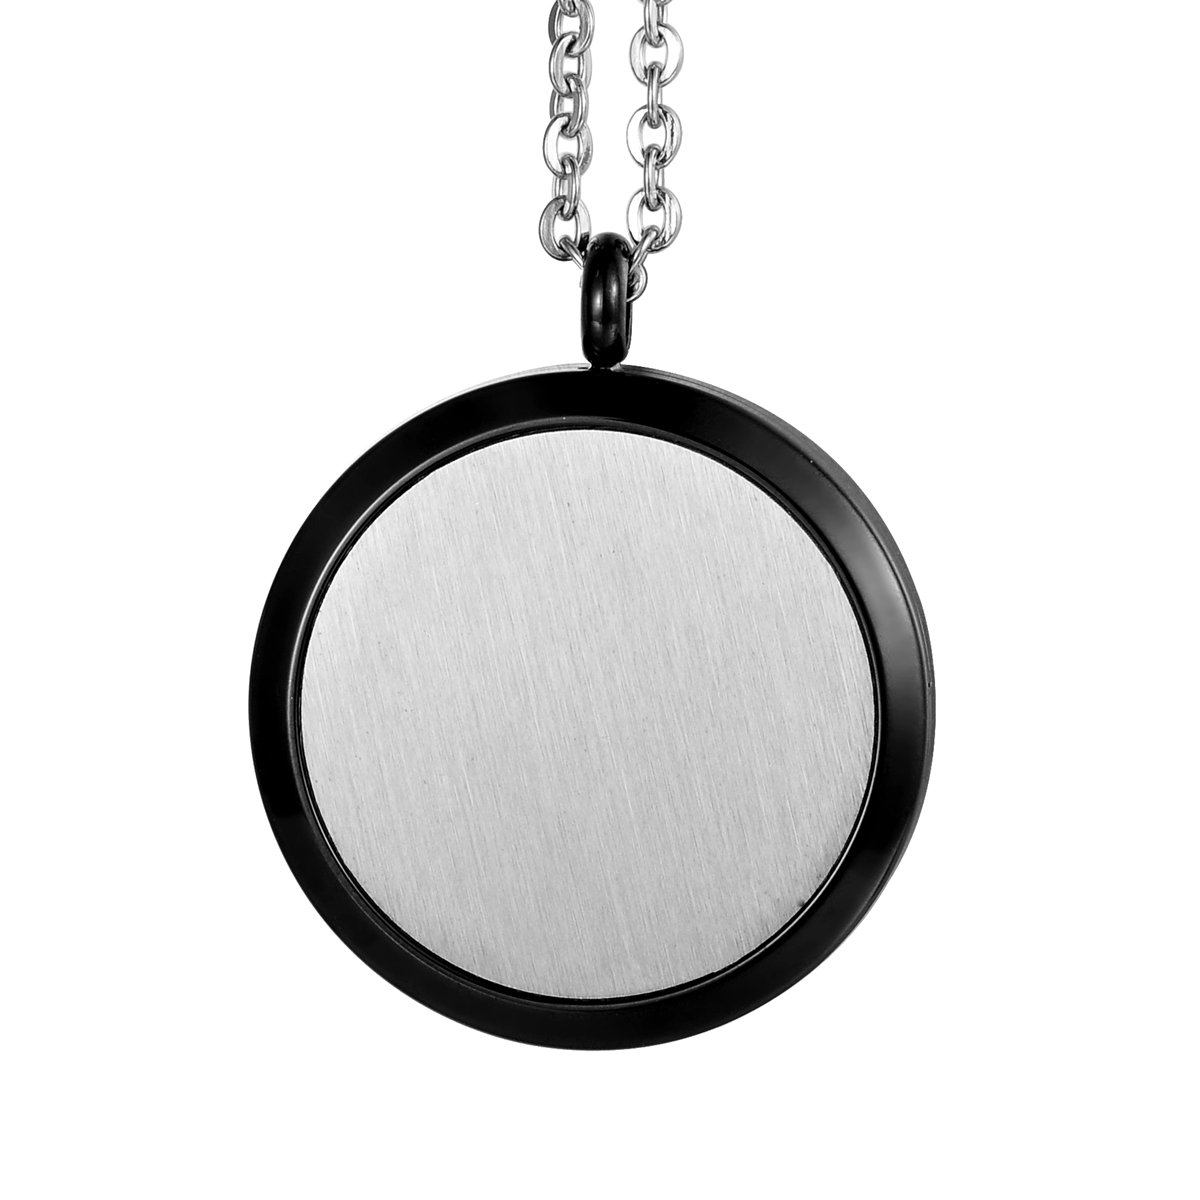 HOUSWEETY Aromatherapy Essential Oil Diffuser Necklace-Stainless Steel Tree of Life Locket Pendant,11 Refill Pads (Non-engraving) by Housweety (Image #4)